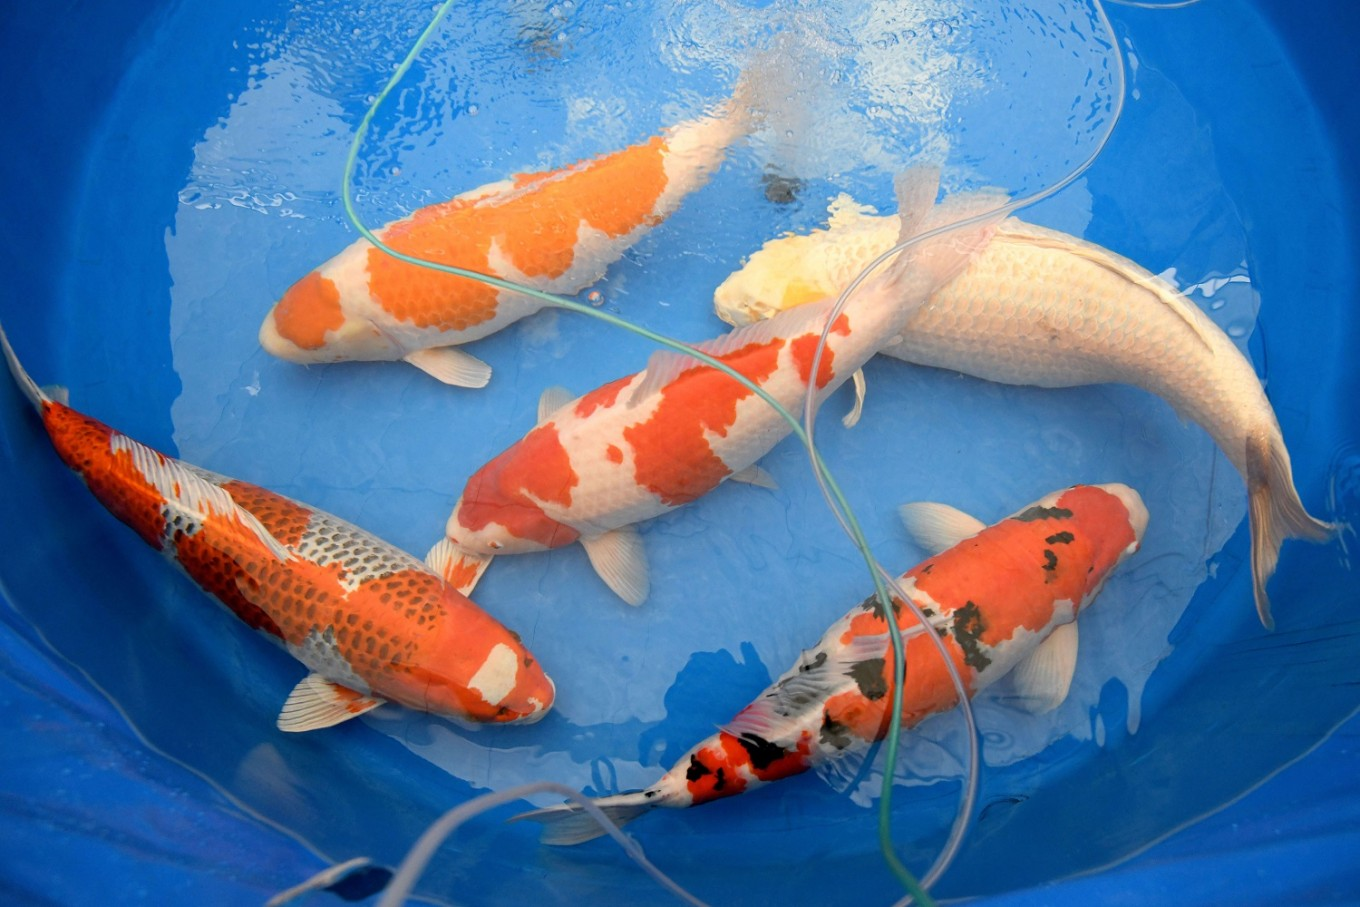 Koi story priceless japanese fish make a splash for Pictures of japanese koi fish